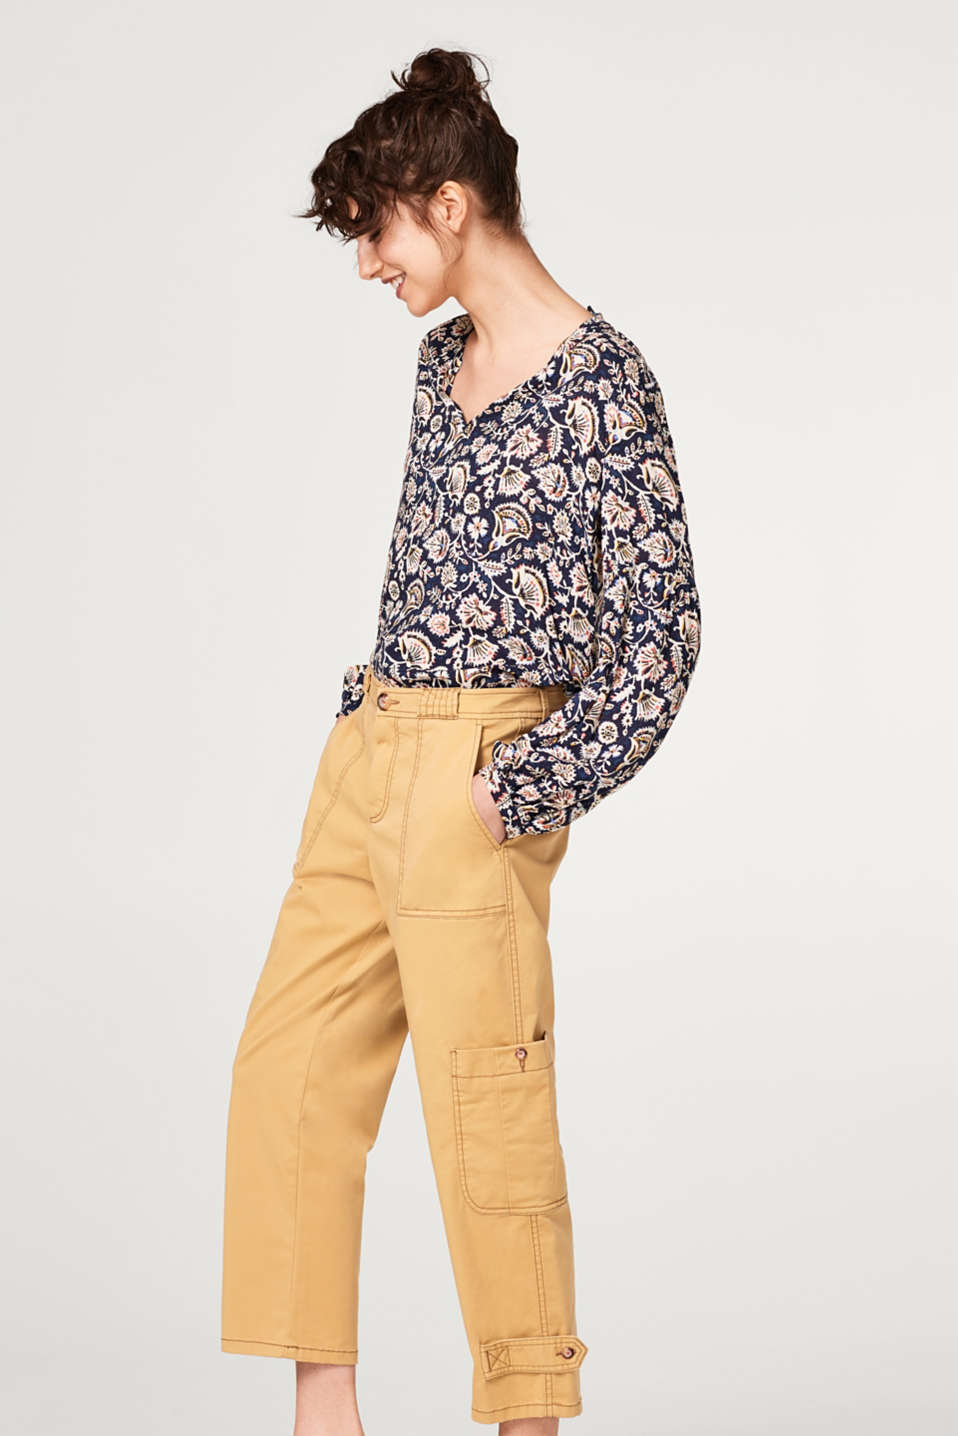 Esprit - Flowing printed blouse with balloon sleeves